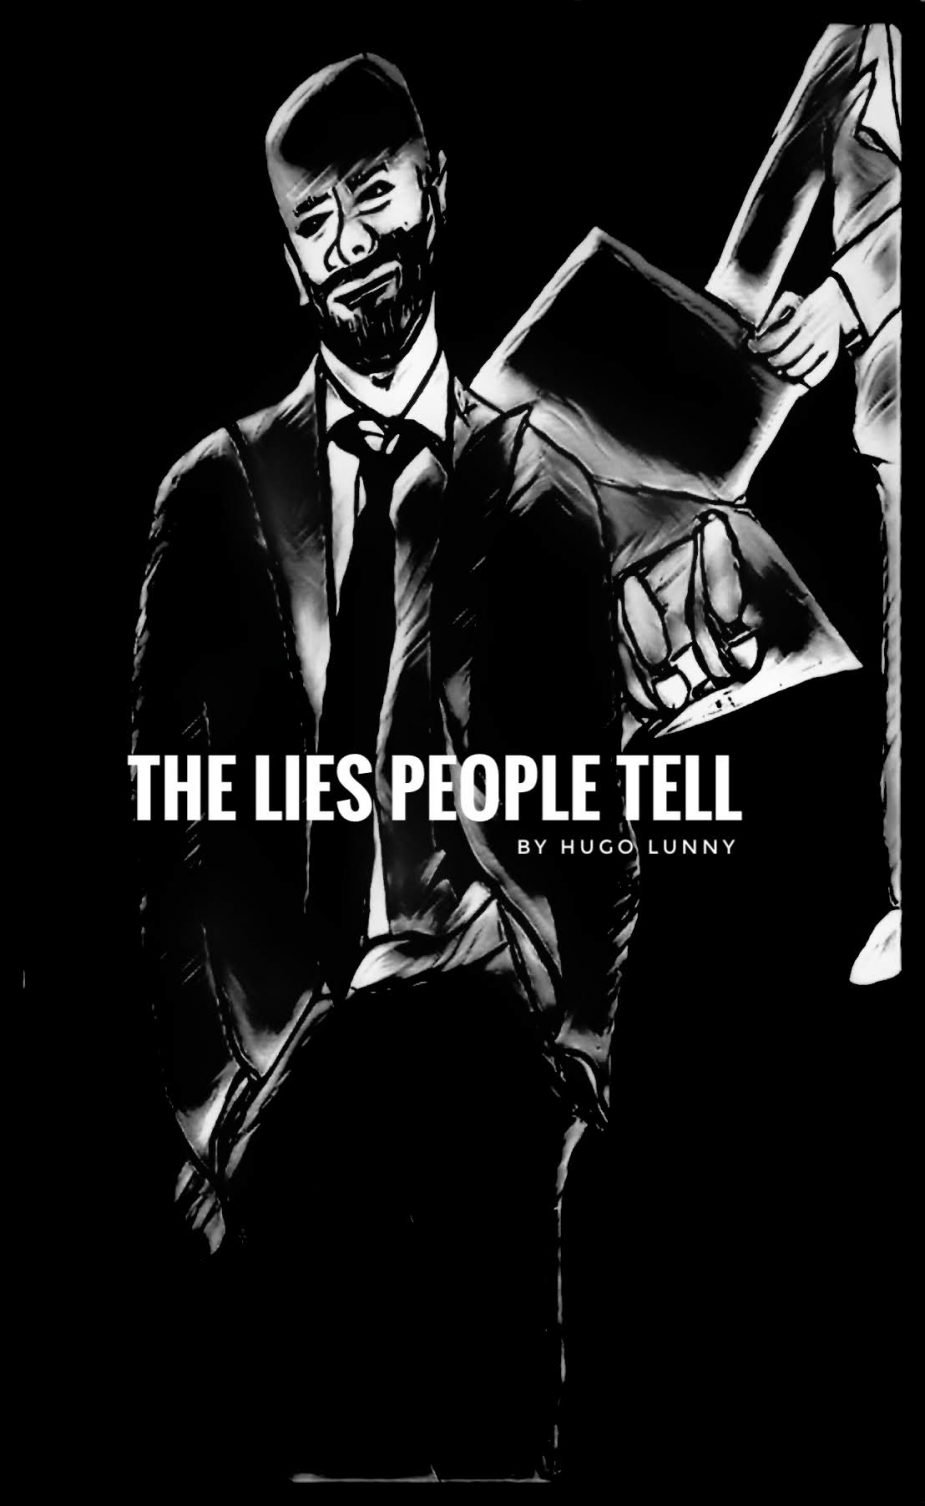 The Lies People Tell